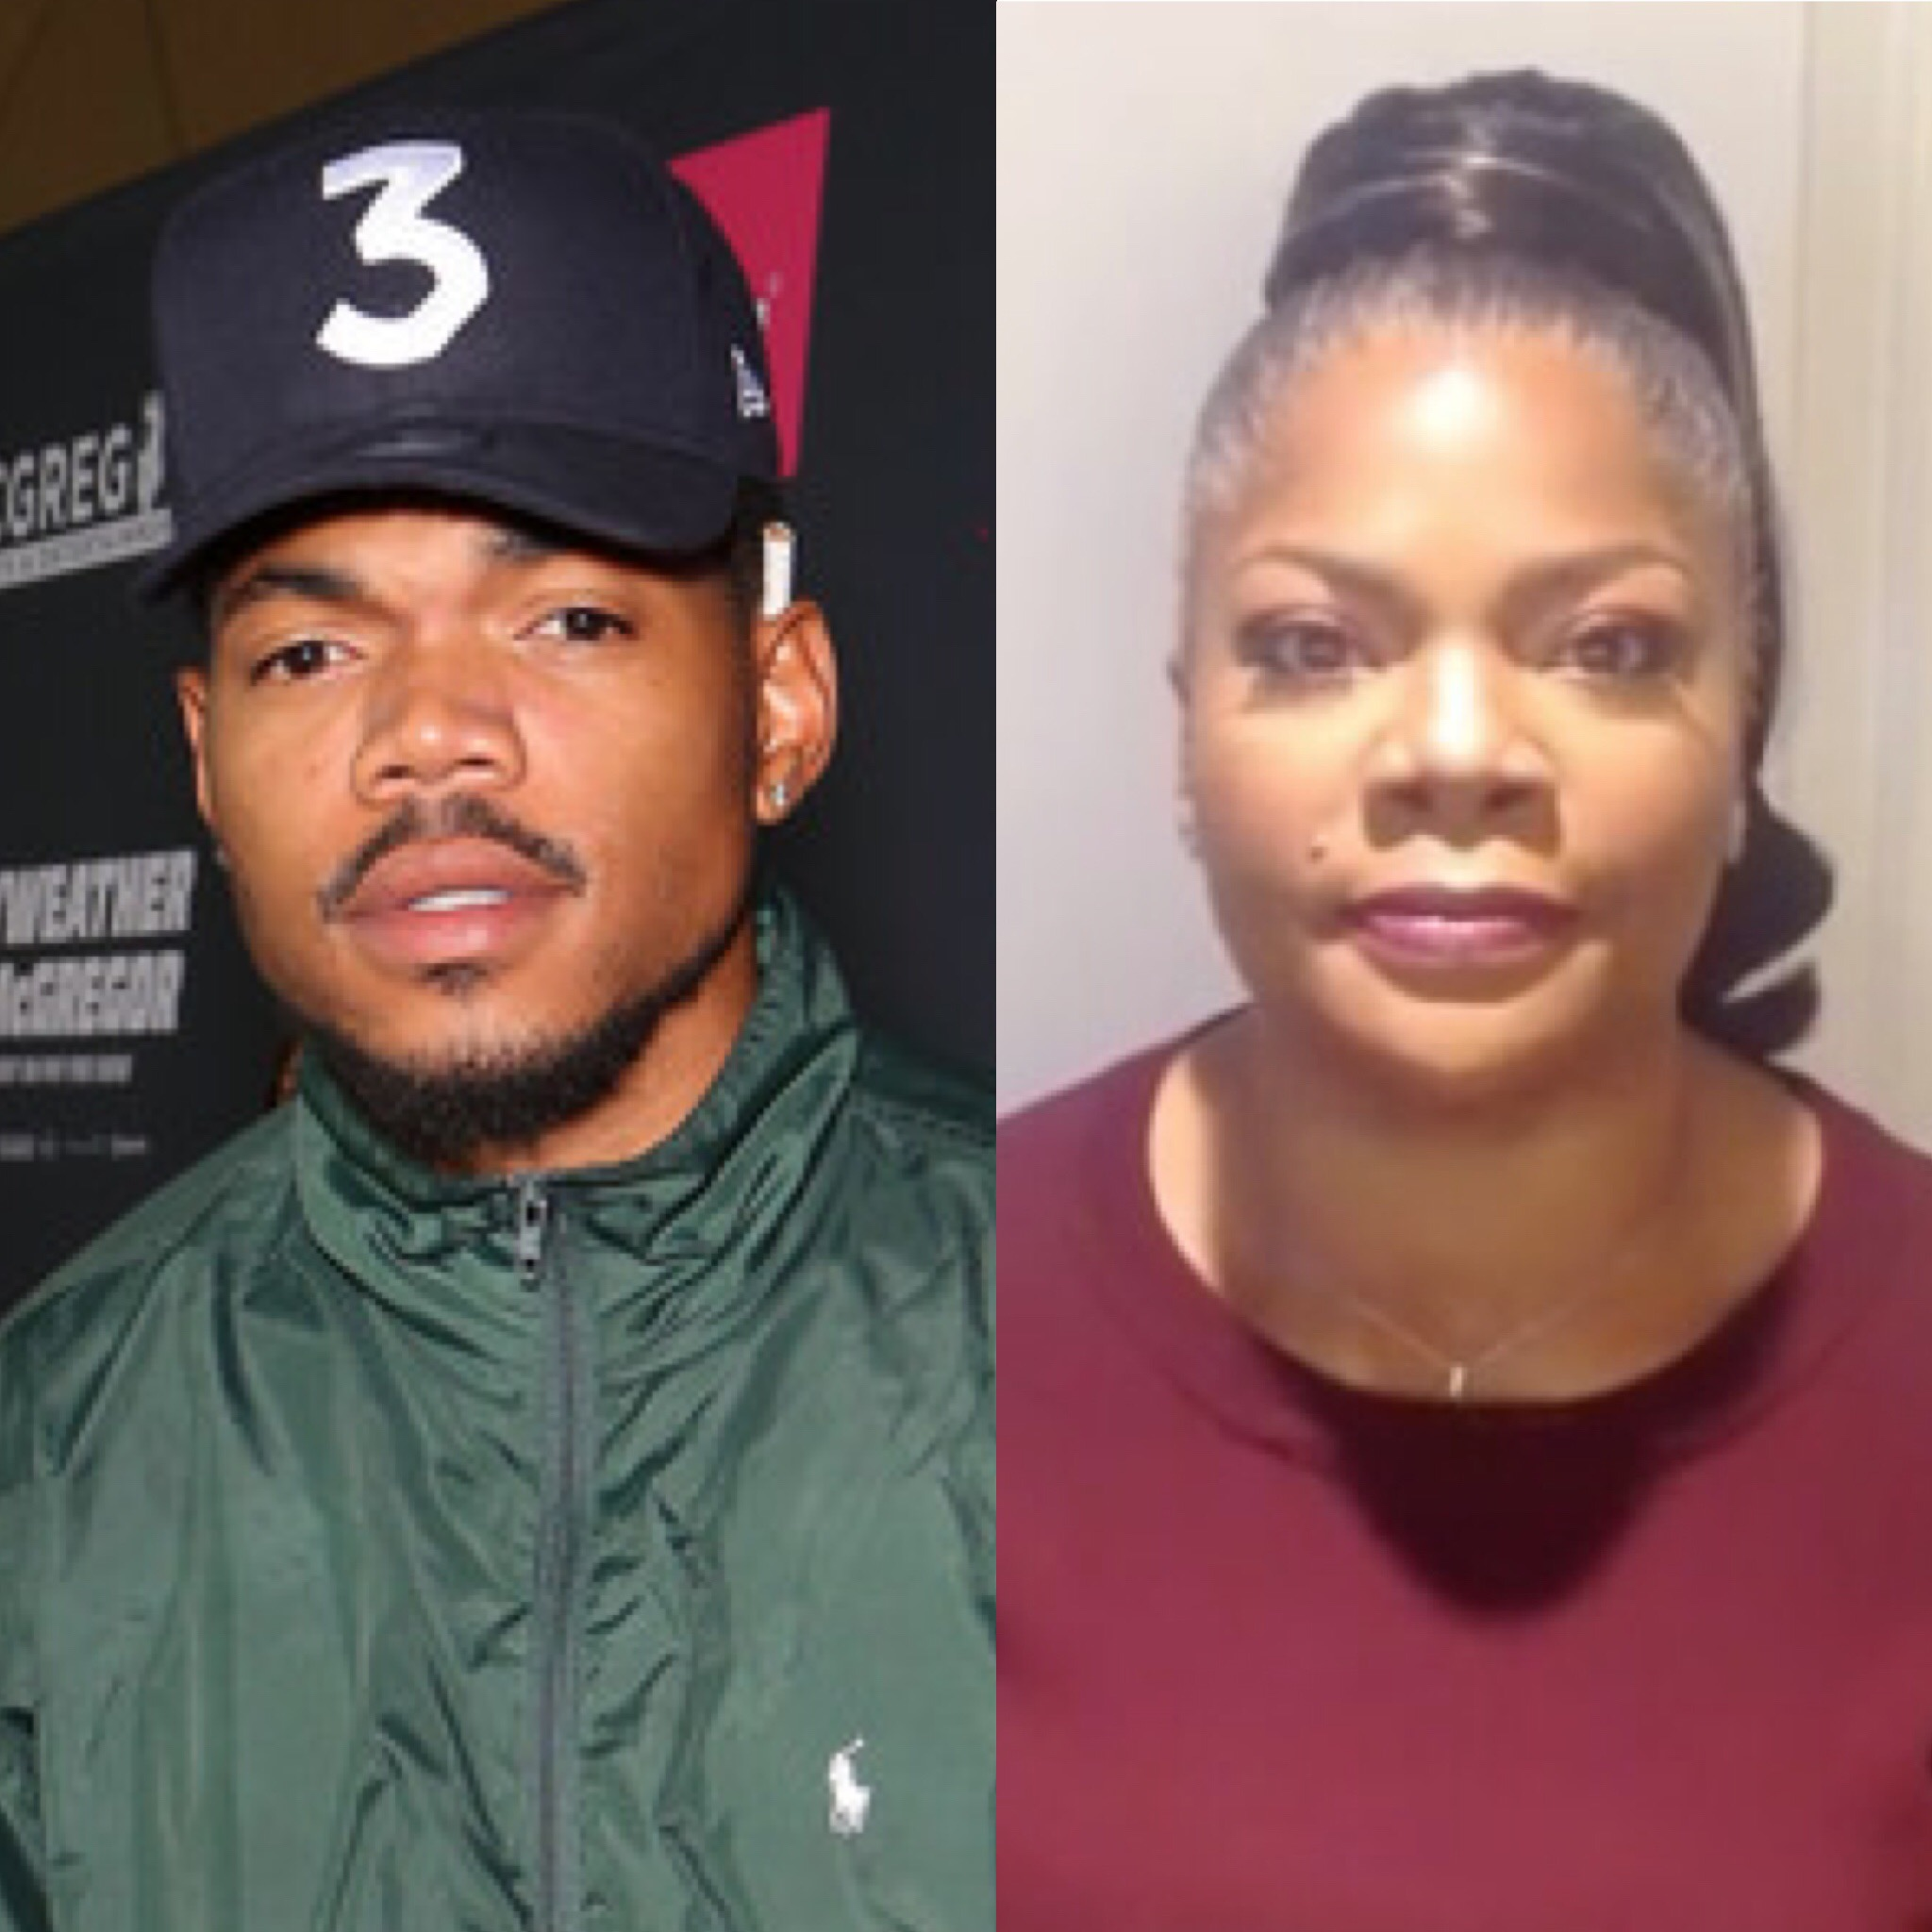 Chance The Rapper stands